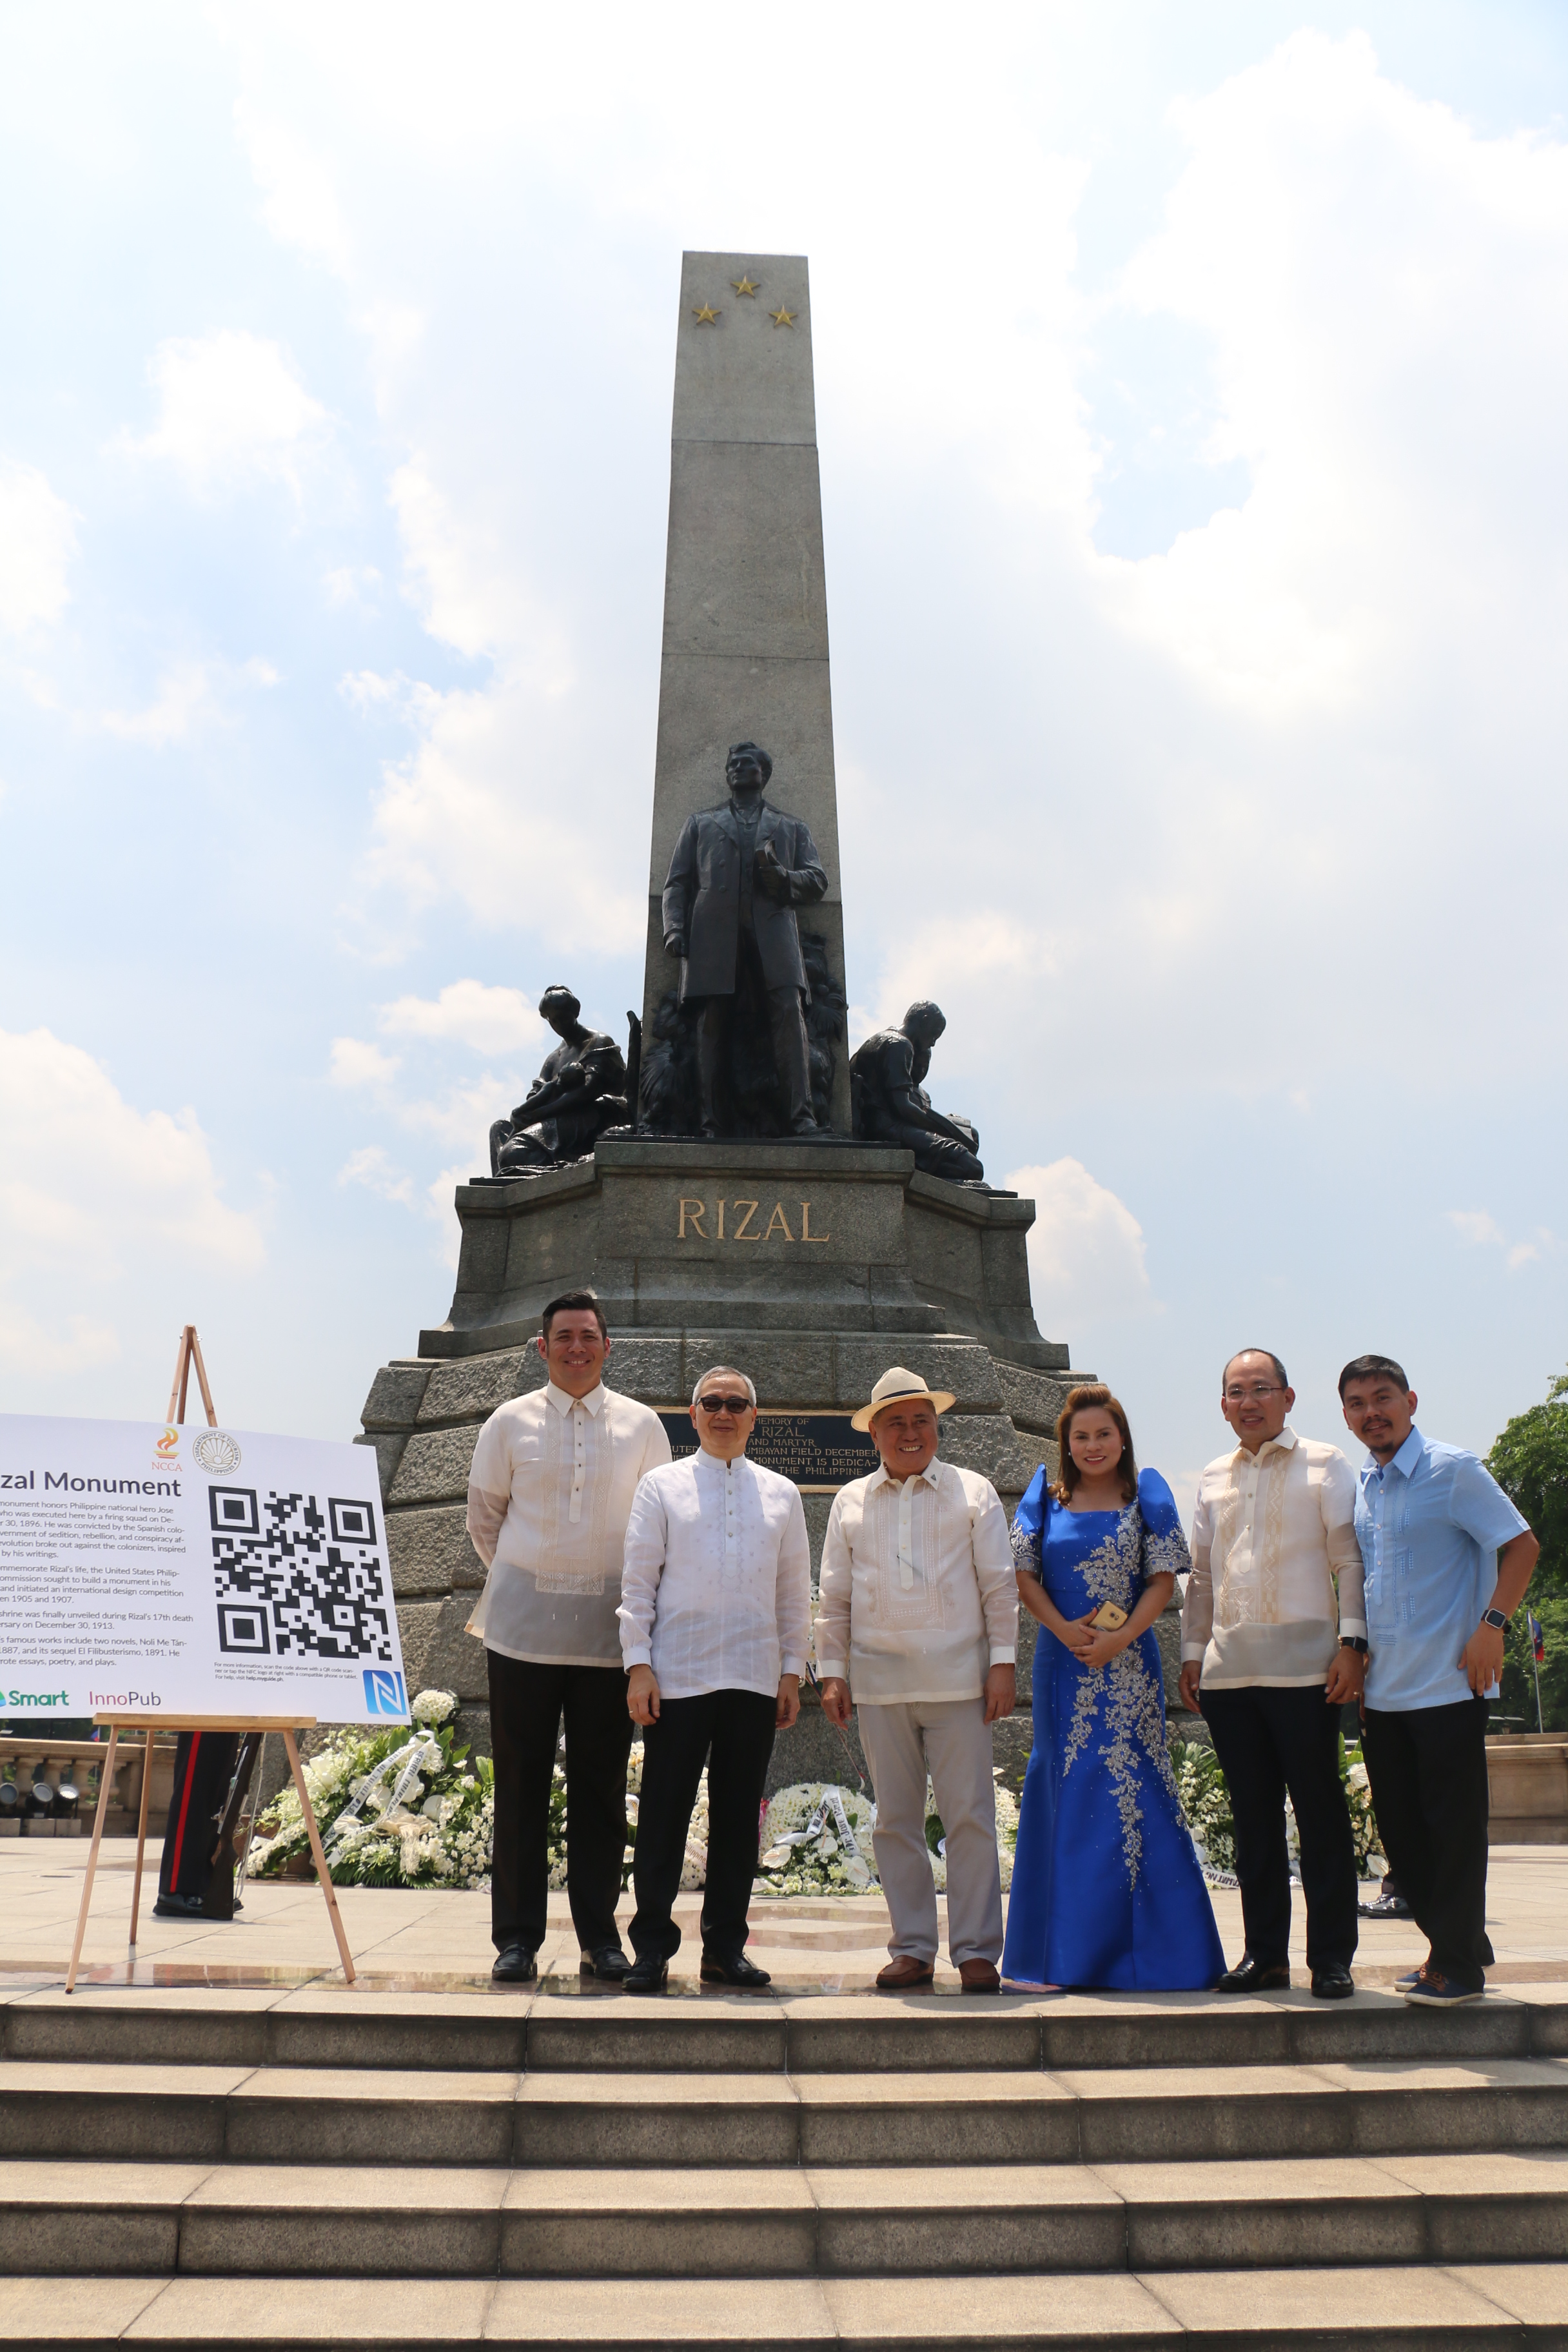 The launch of the Kultoura app was held at Rizal Park to commemorate the 156th birthday of National Hero Jose Rizal. Leading the launch were Smart AVP/Head of Community Engagement and Partnerships Gabby R. Cui, PLDT and Smart Public Affairs Group Head Ramon R. Isberto, NCCA Chairman Virgilio Almario, National Parks Development Committee Executive Director Penelope Belmonte, DOT Undersecretary for Oversight Function for Legislative Matters Falconi Millar, and InnoPub Media co- founder Max Limpag.